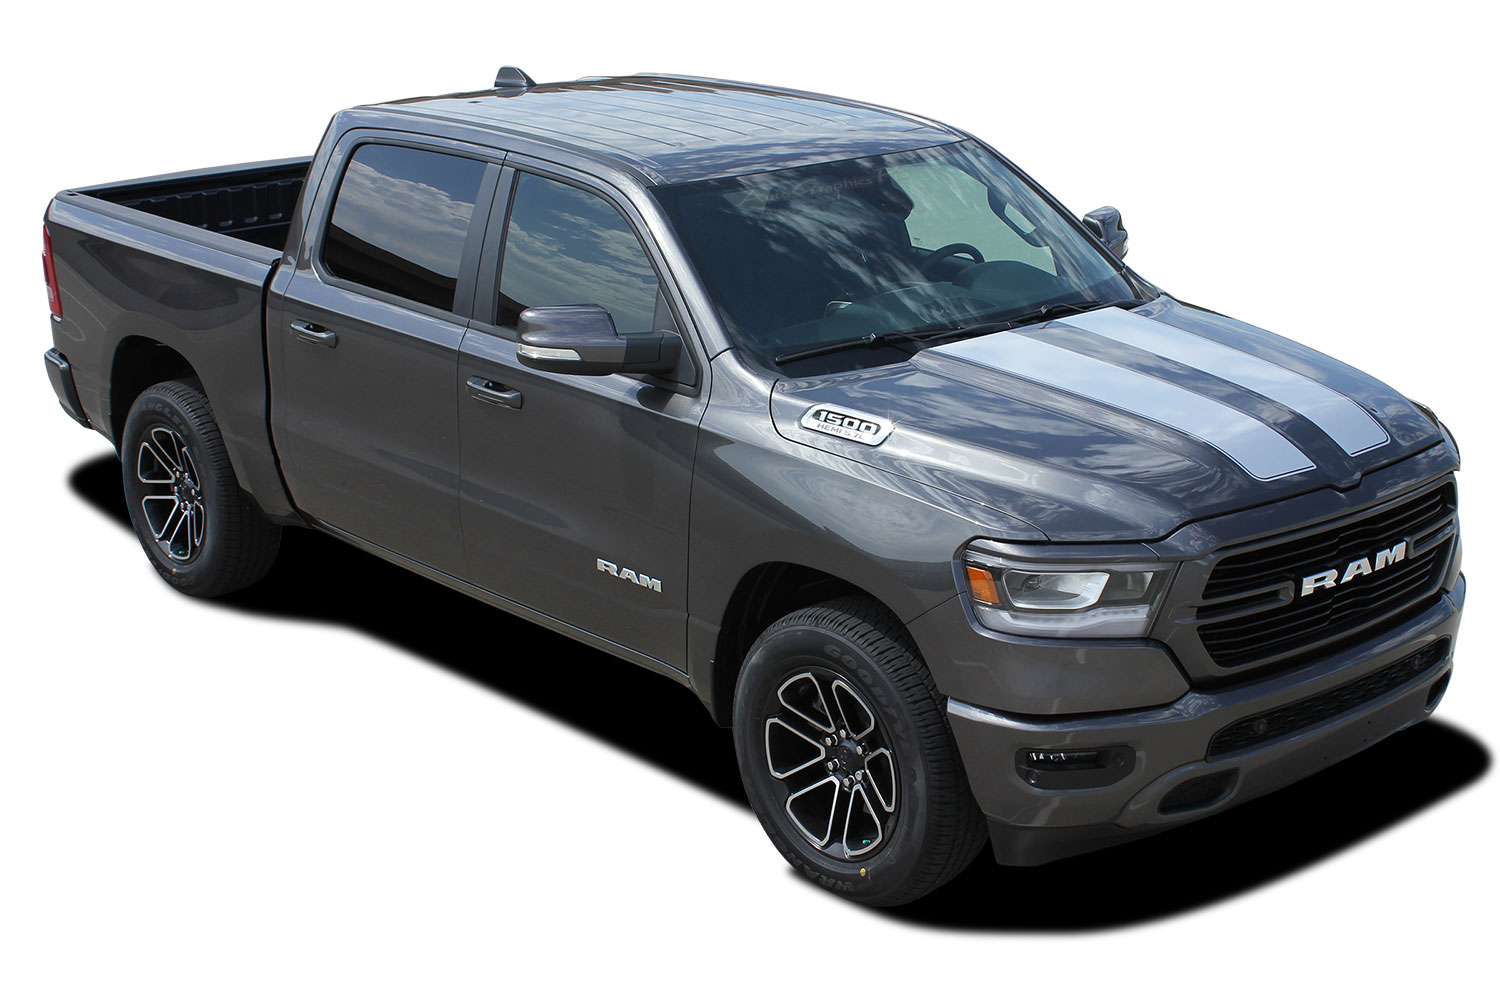 2019 2020 dodge ram rally hood racing stripes and tailgate decals truck vinyl graphic stripe kit